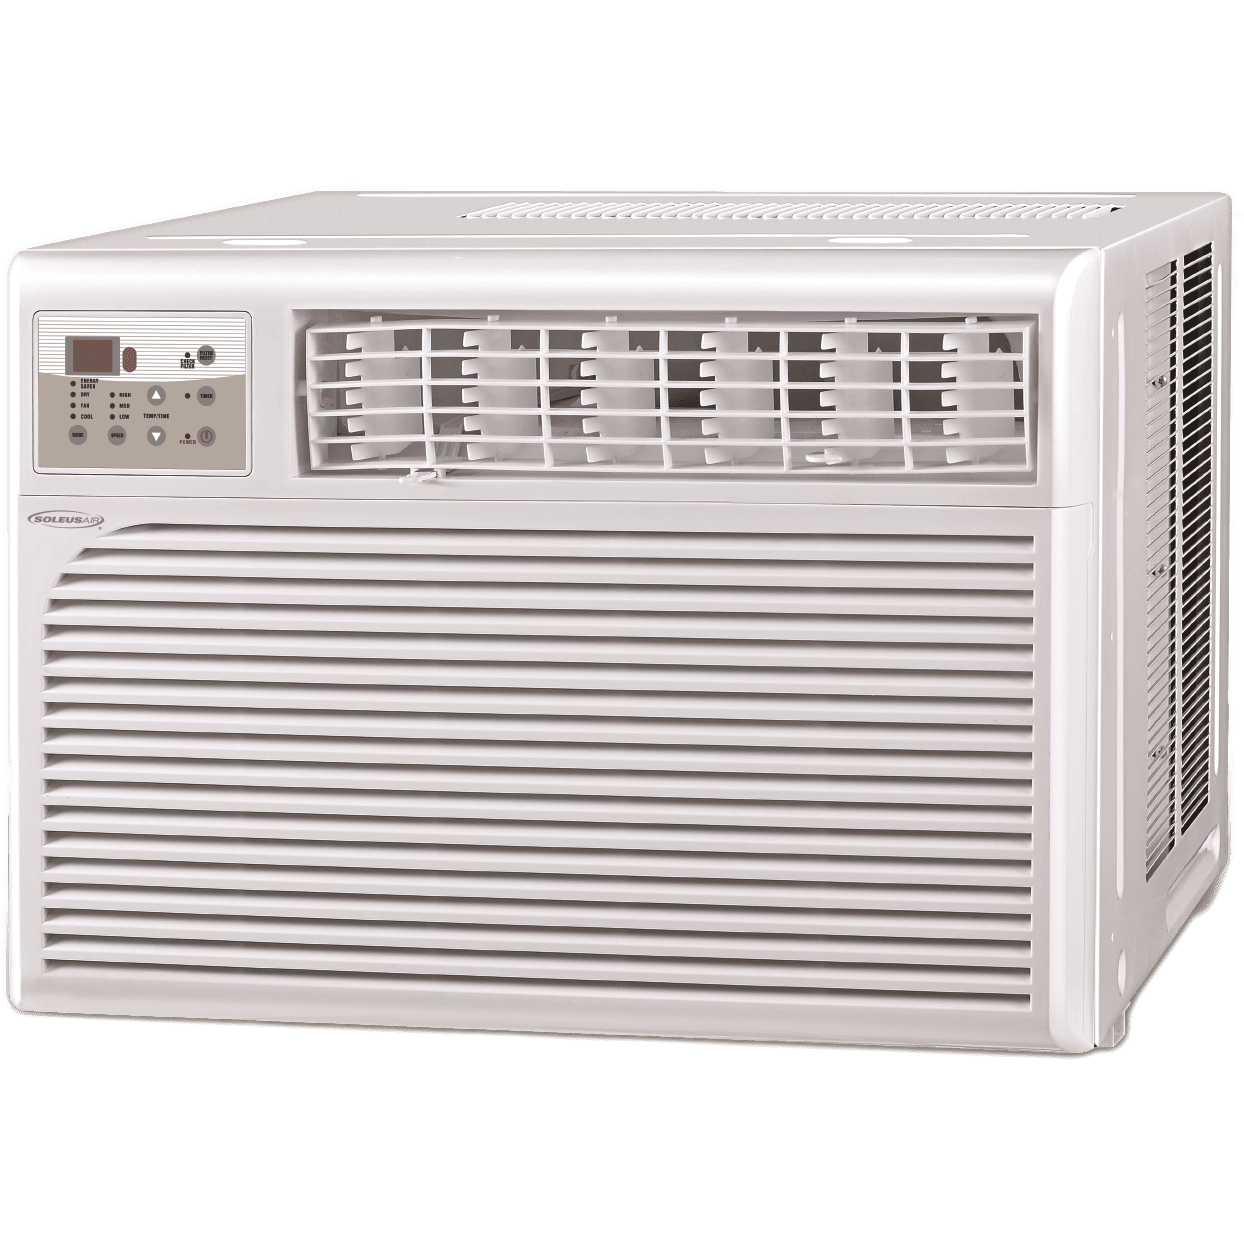 Buy soleus air hcc w12es a1 12 000 btu window air for 12 x 19 window air conditioner